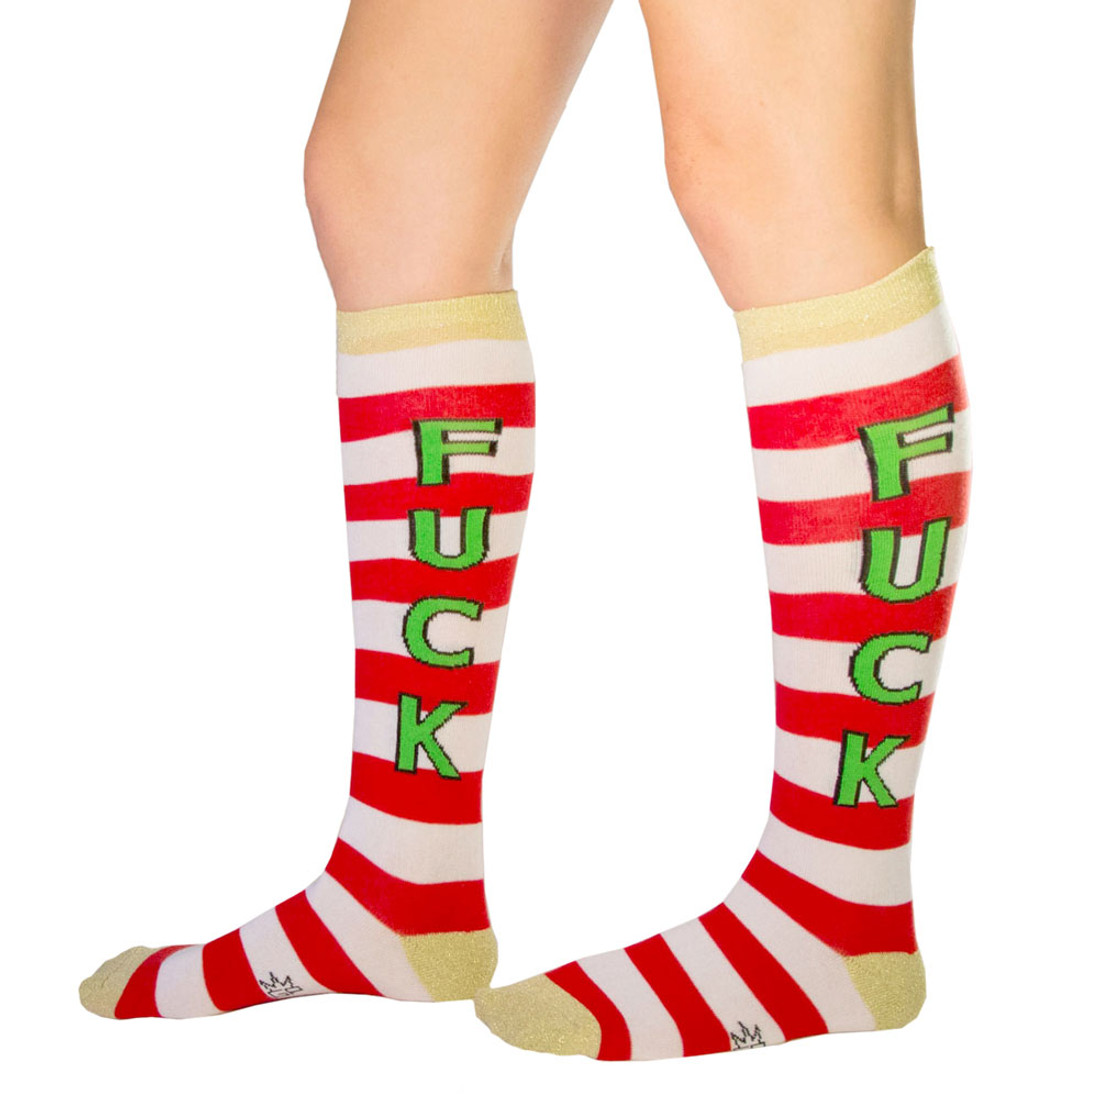 c1f18dbd7 Men s or Women s F CK Christmas Holiday Striped Knee High Socks ...